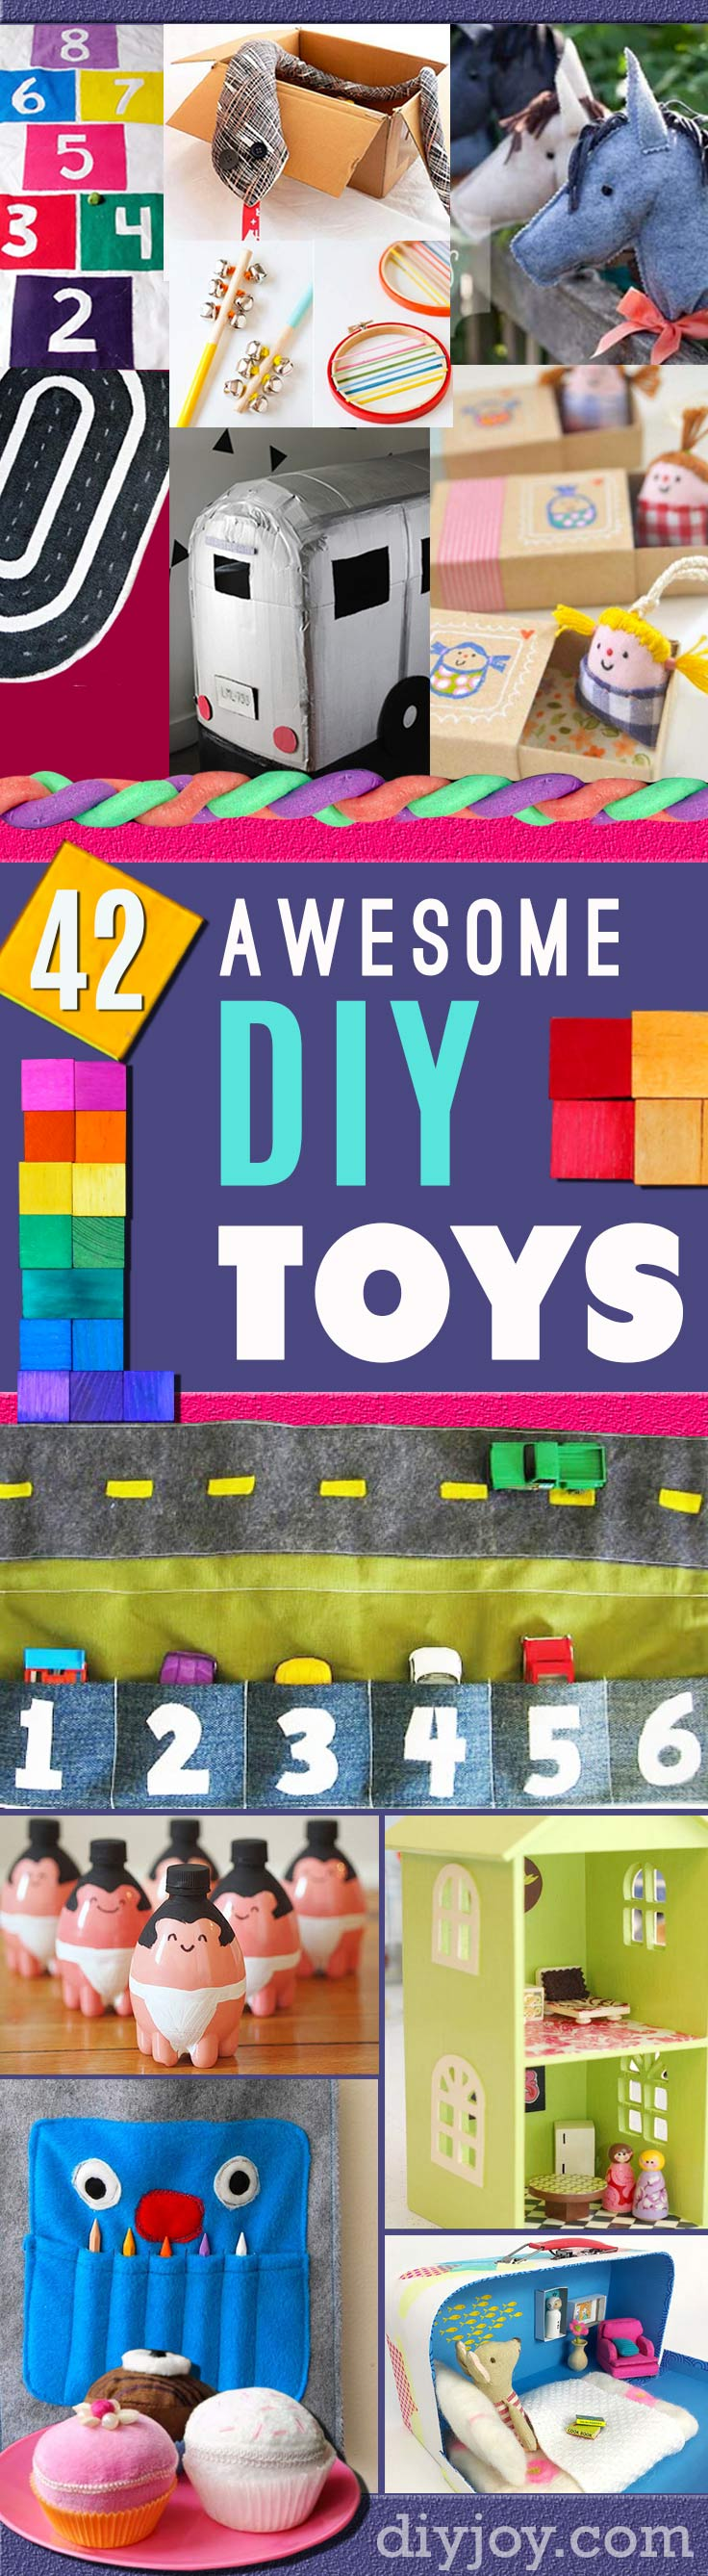 Unique Fun For Little Boys Toys : Fun diy gifts to make for kids perfect homemade